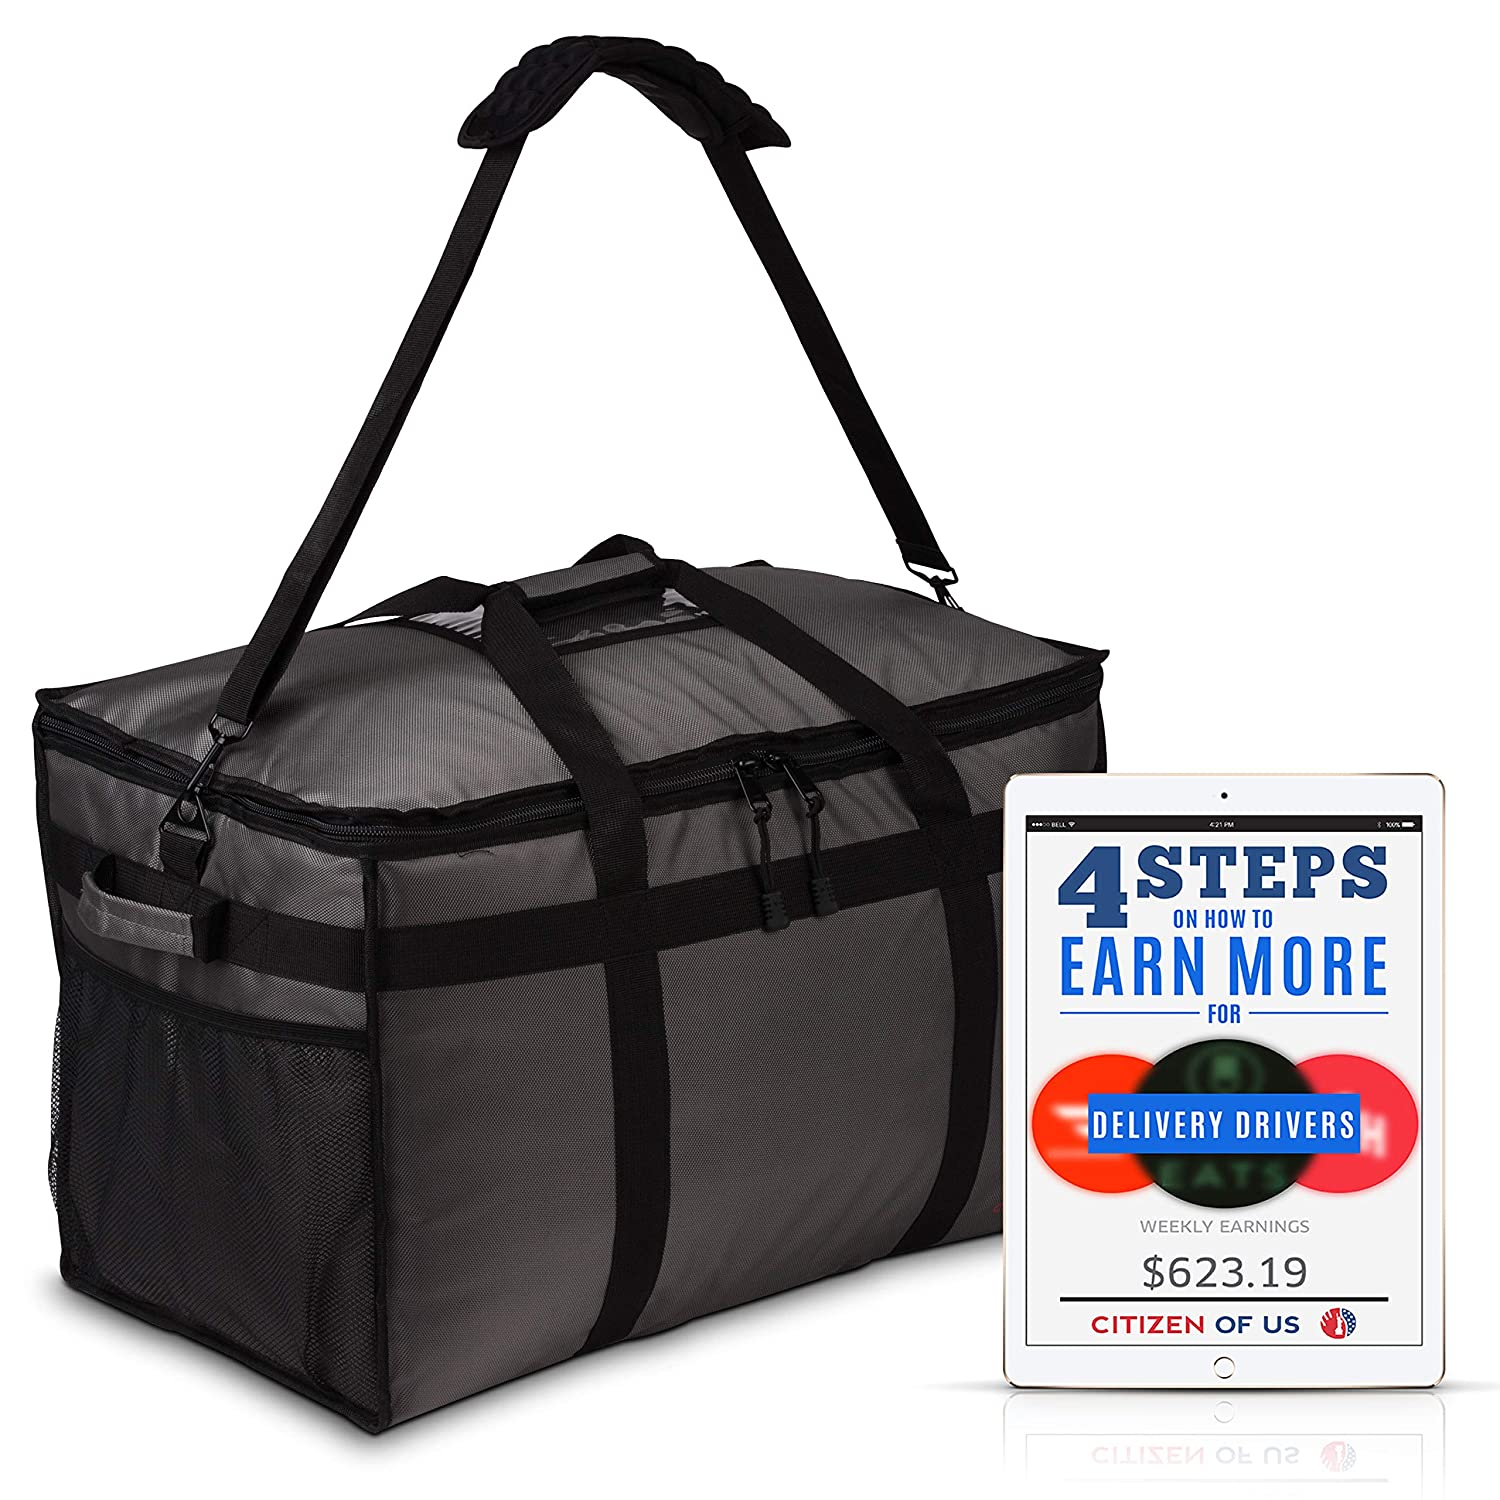 B07LH4VPTV VIP Uber EATS Insulated Catering Delivery Bag - Food Delivery Game Changer - for Doordash, Grubhub, Postmates Food Delivery 91a-oqx6NCL